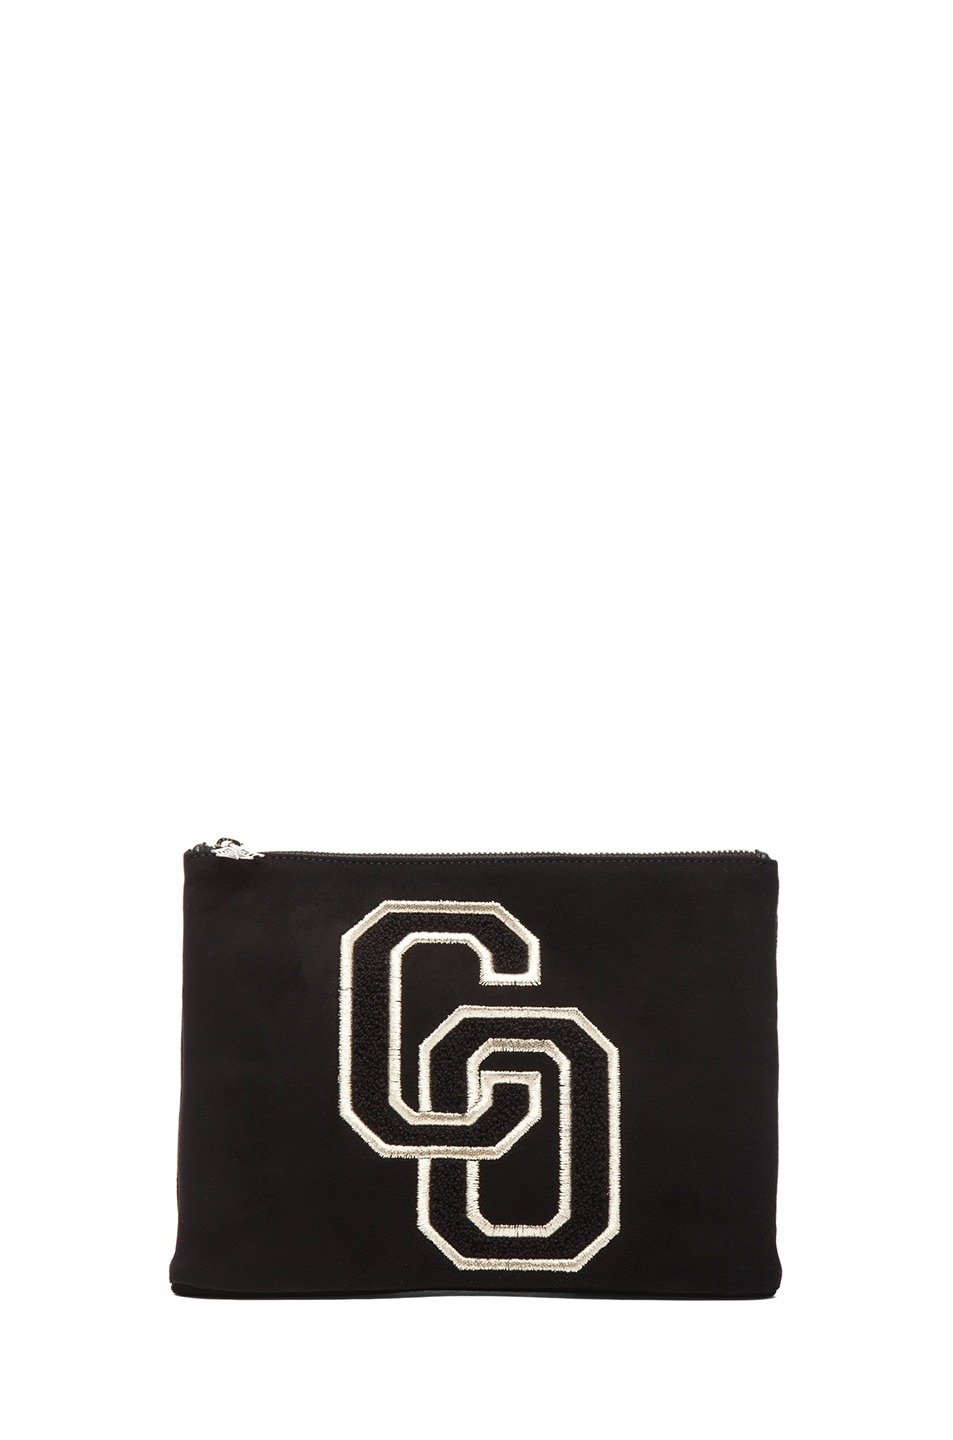 Image 1 of Charlotte Olympia Suede Varsity Purse in Black